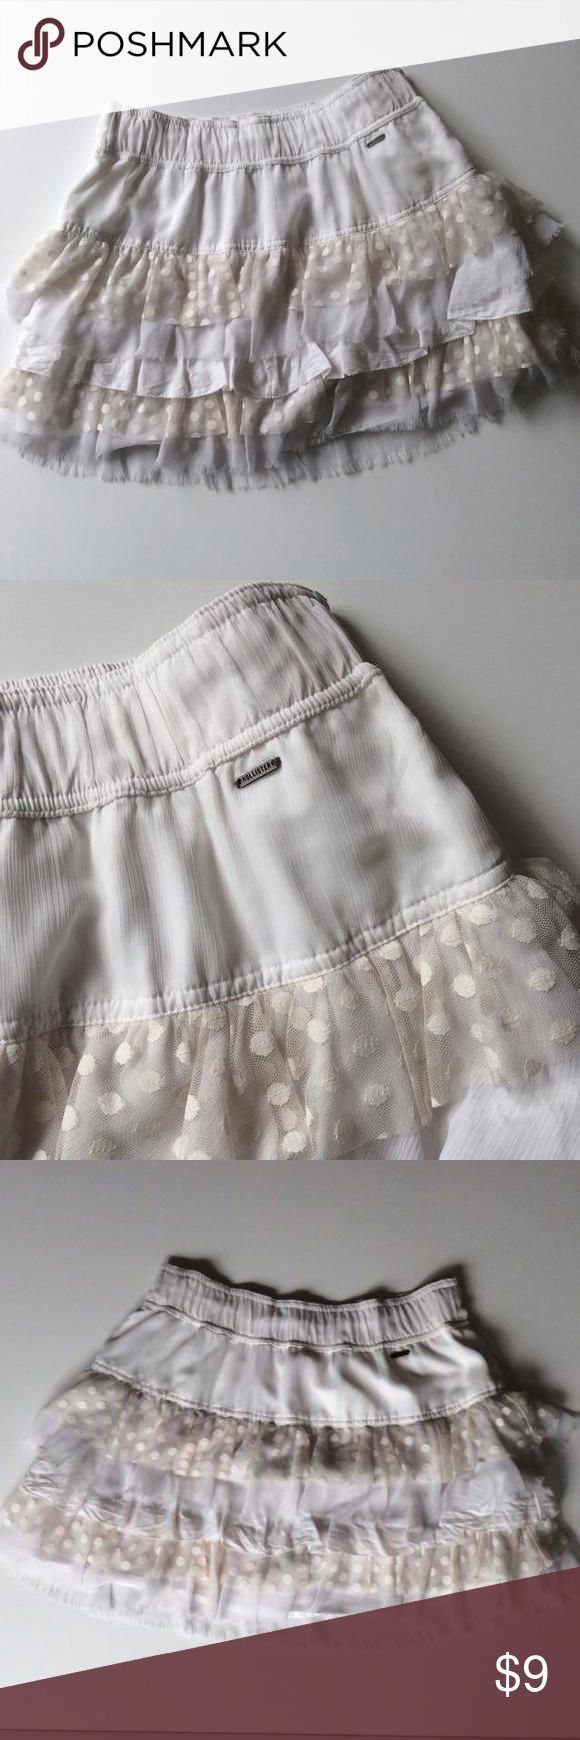 Hollister tiered skirt, size M Gorgeous skirt with elastic waist, size M. Hollister Kids Bottoms Skirts